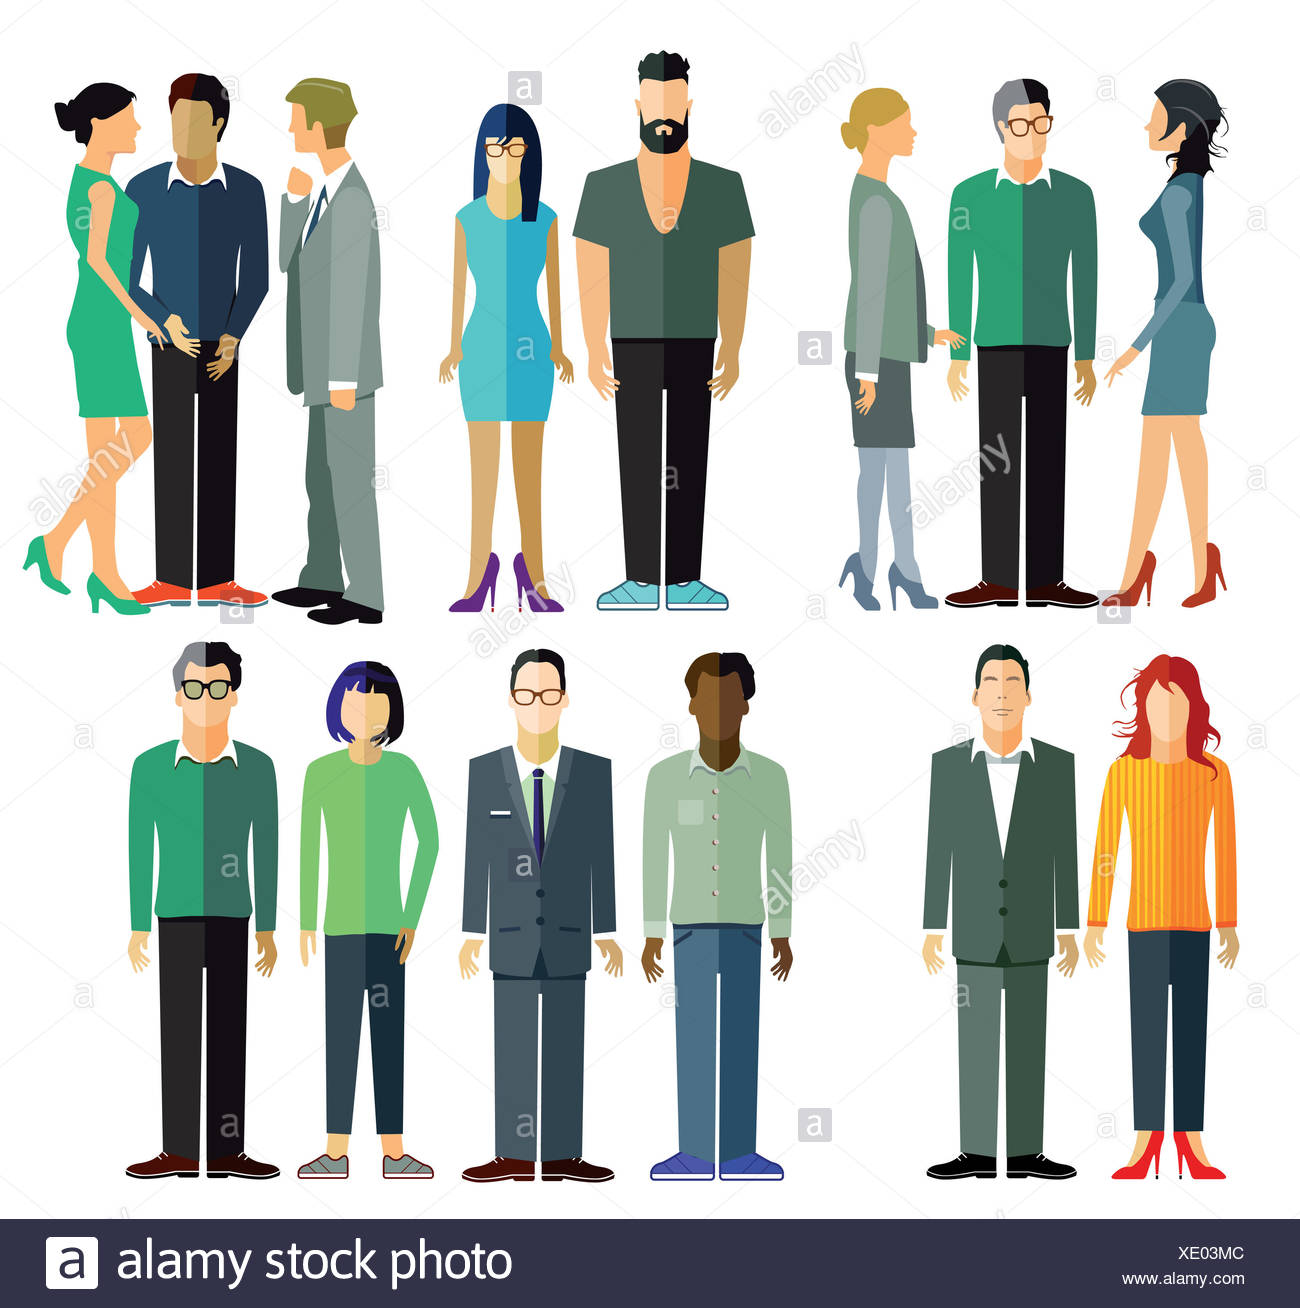 People and Groups - Stock Image